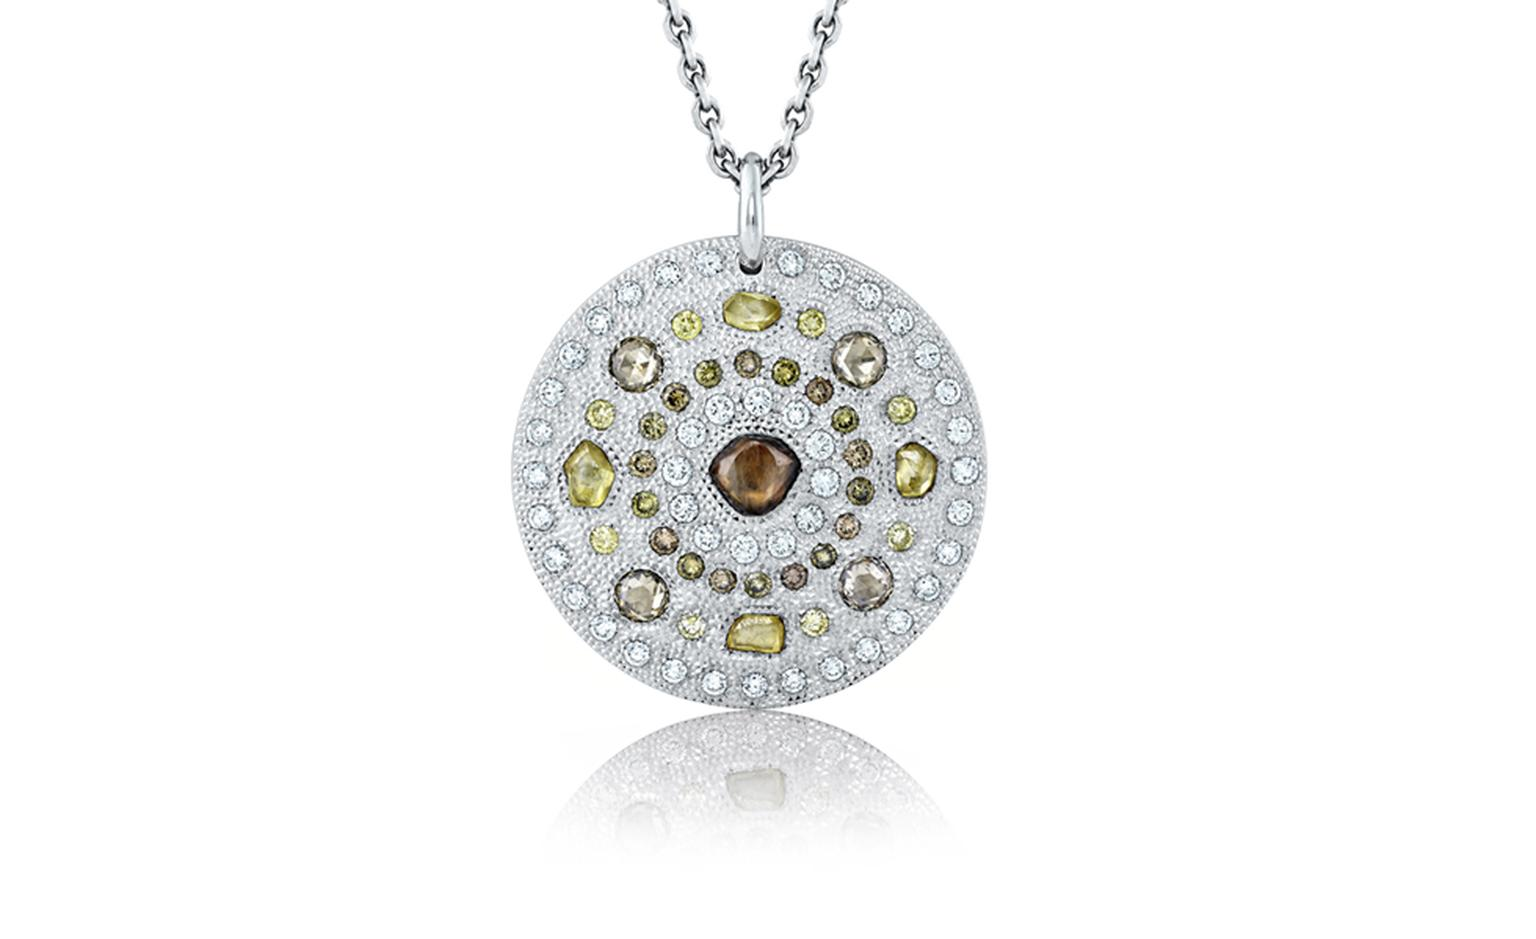 De Beers Talisman Medallion in white gold. £7,050